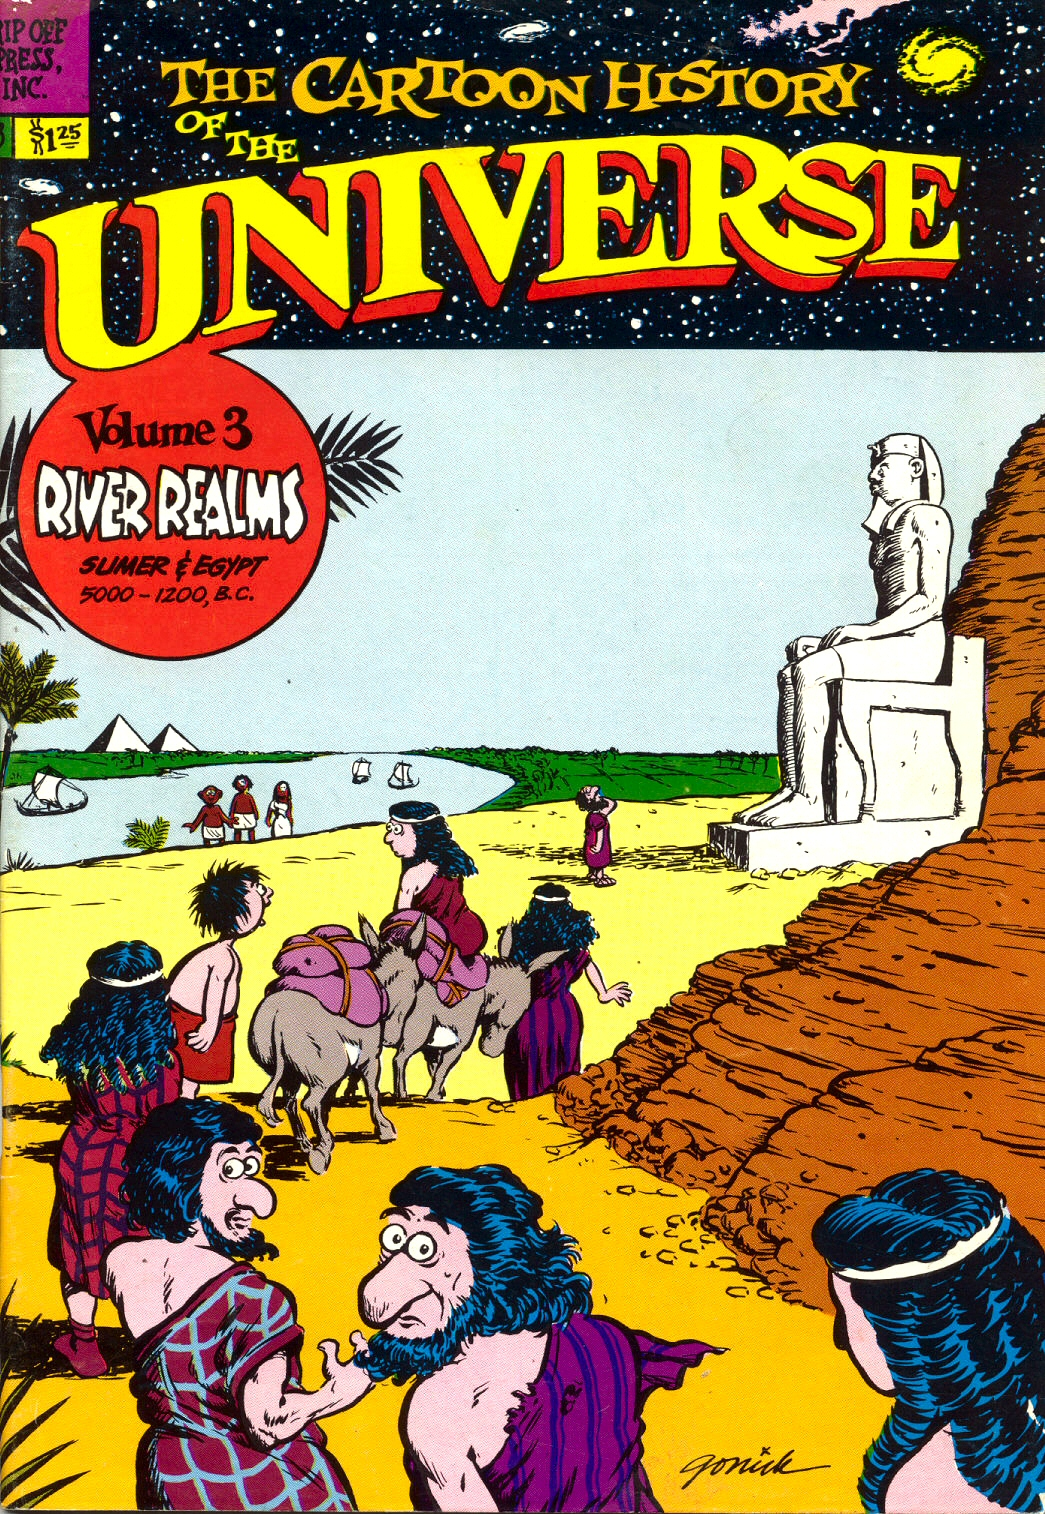 Read online The Cartoon History of the Universe comic -  Issue #3 - 1